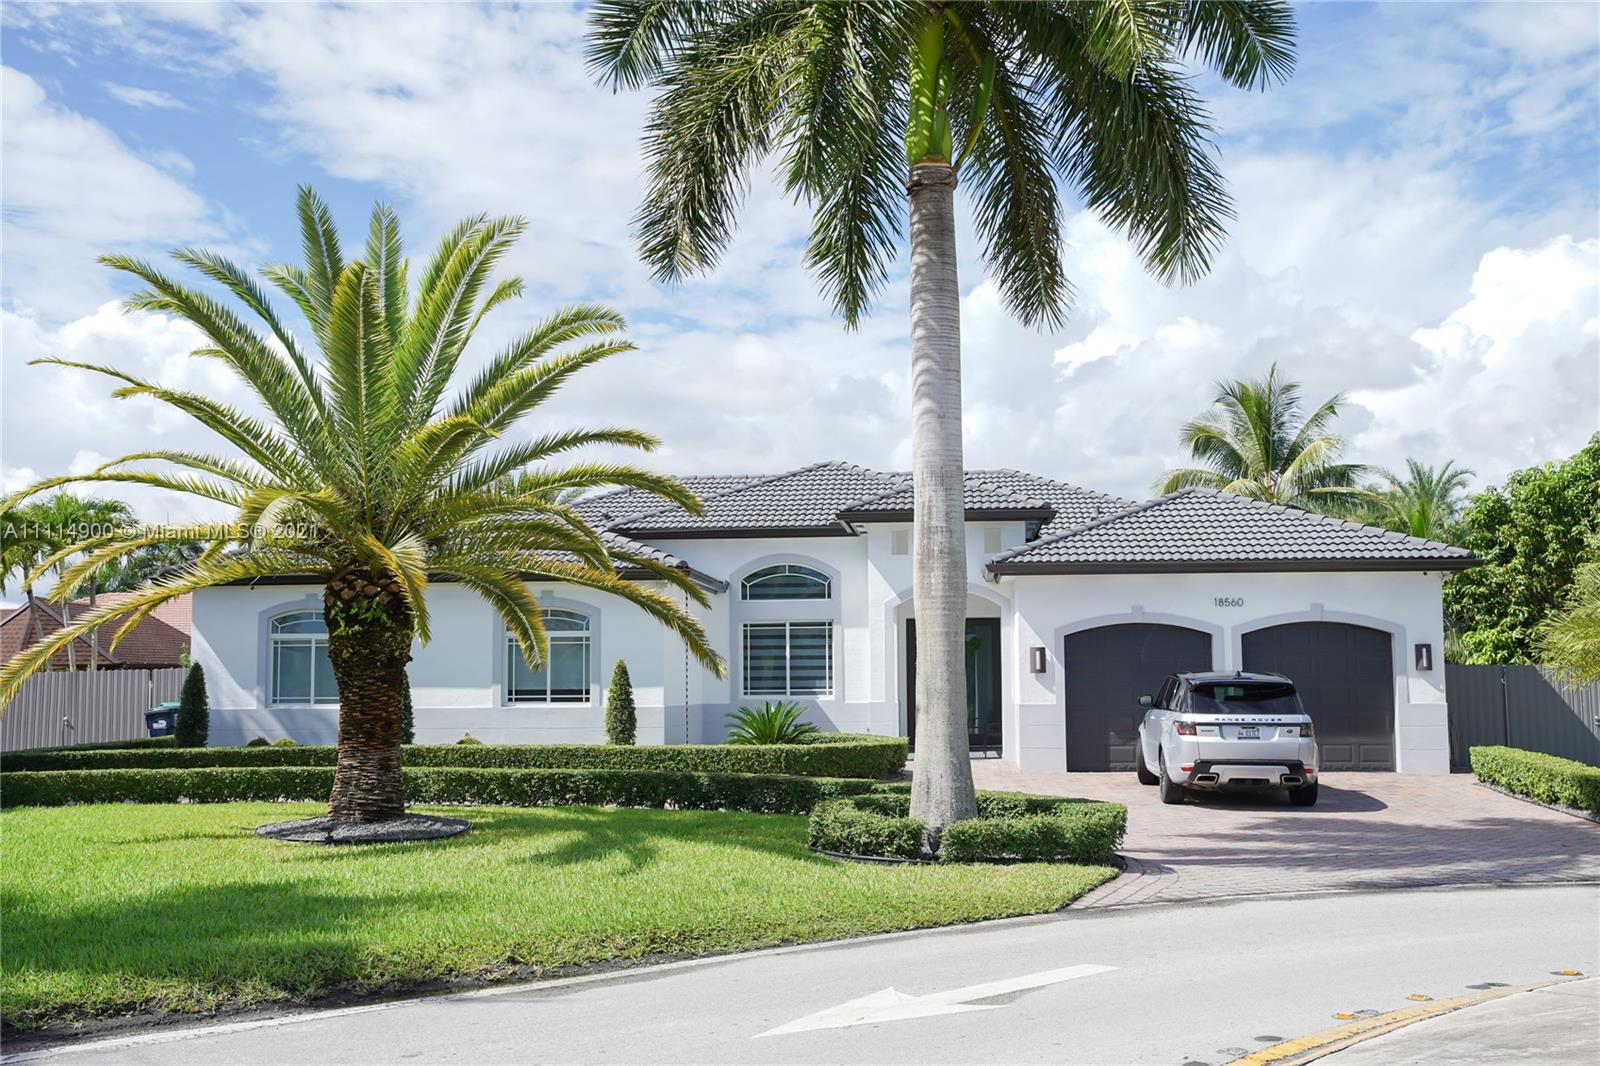 Single Family Home,For Sale,18560 SW 132nd Ave, Miami, Florida 33177,Brickell,realty,broker,condos near me